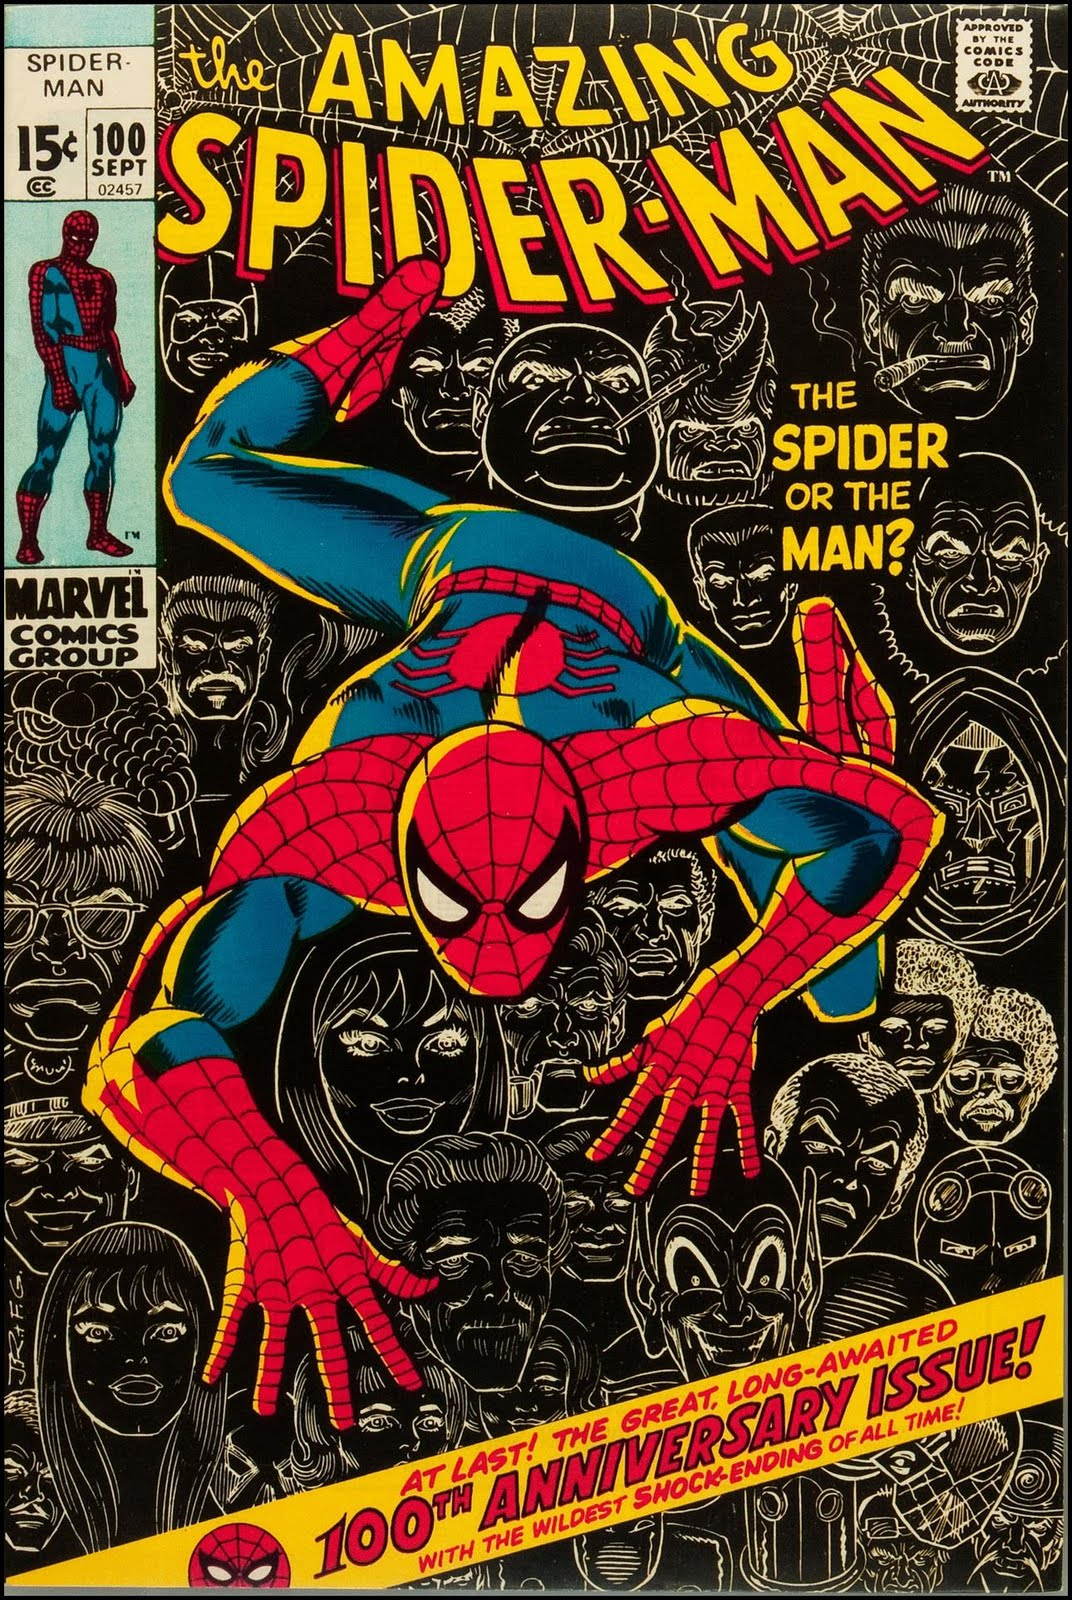 Comic Book Cover Pictures ~ Fantasy ink does whatever a spider can